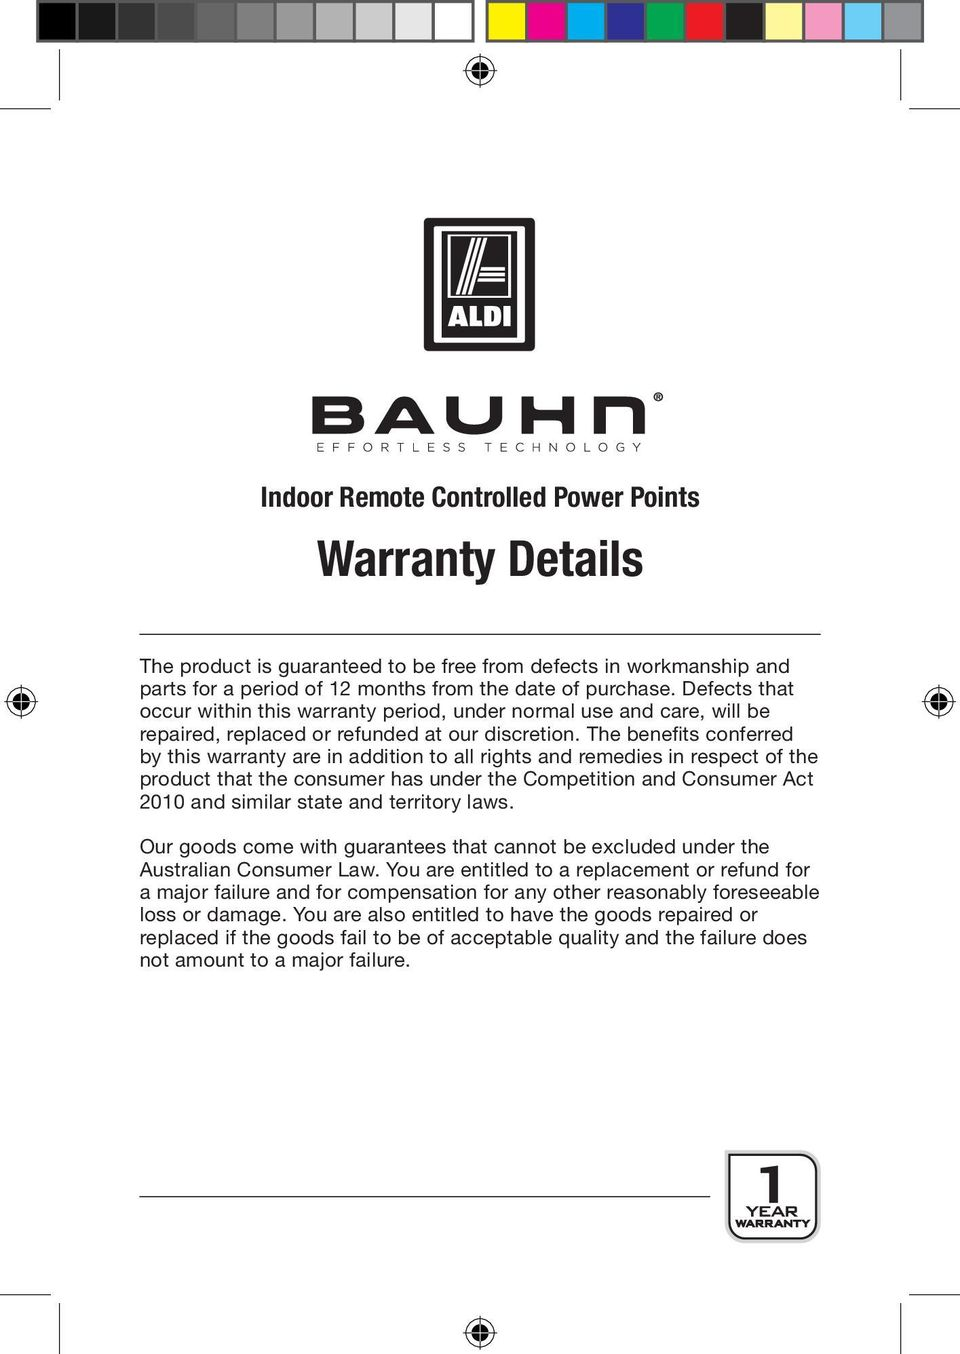 The benefits conferred by this warranty are in addition to all rights and remedies in respect of the product that the consumer has under the Competition and Consumer Act 2010 and similar state and